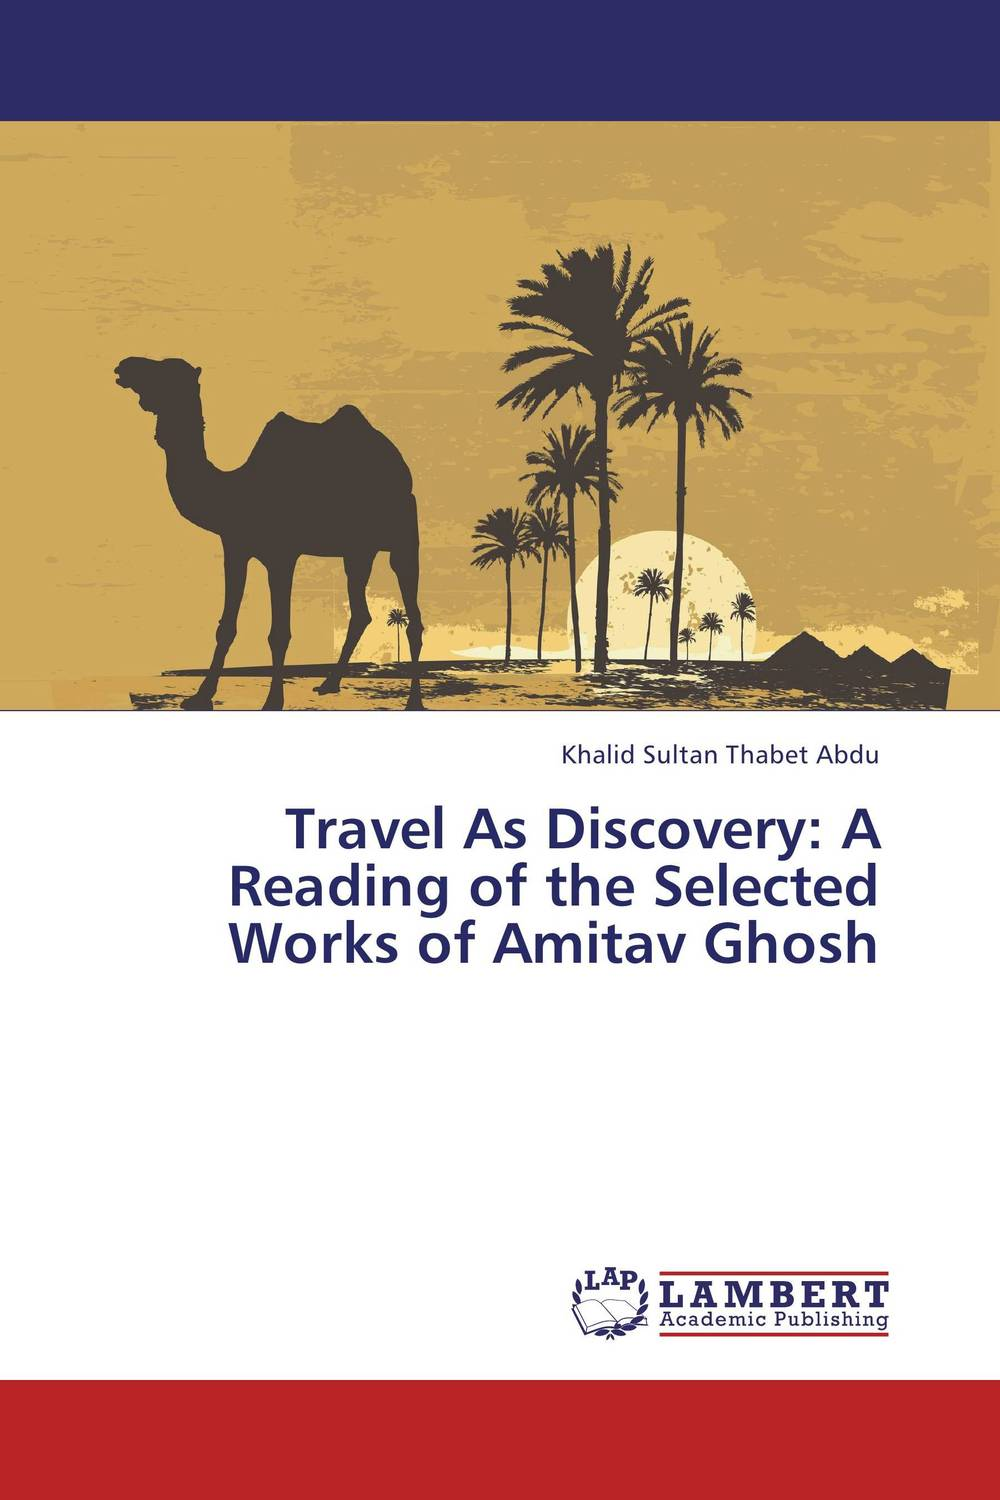 Travel As Discovery: A Reading of the Selected Works of Amitav Ghosh the selected works of h g wells